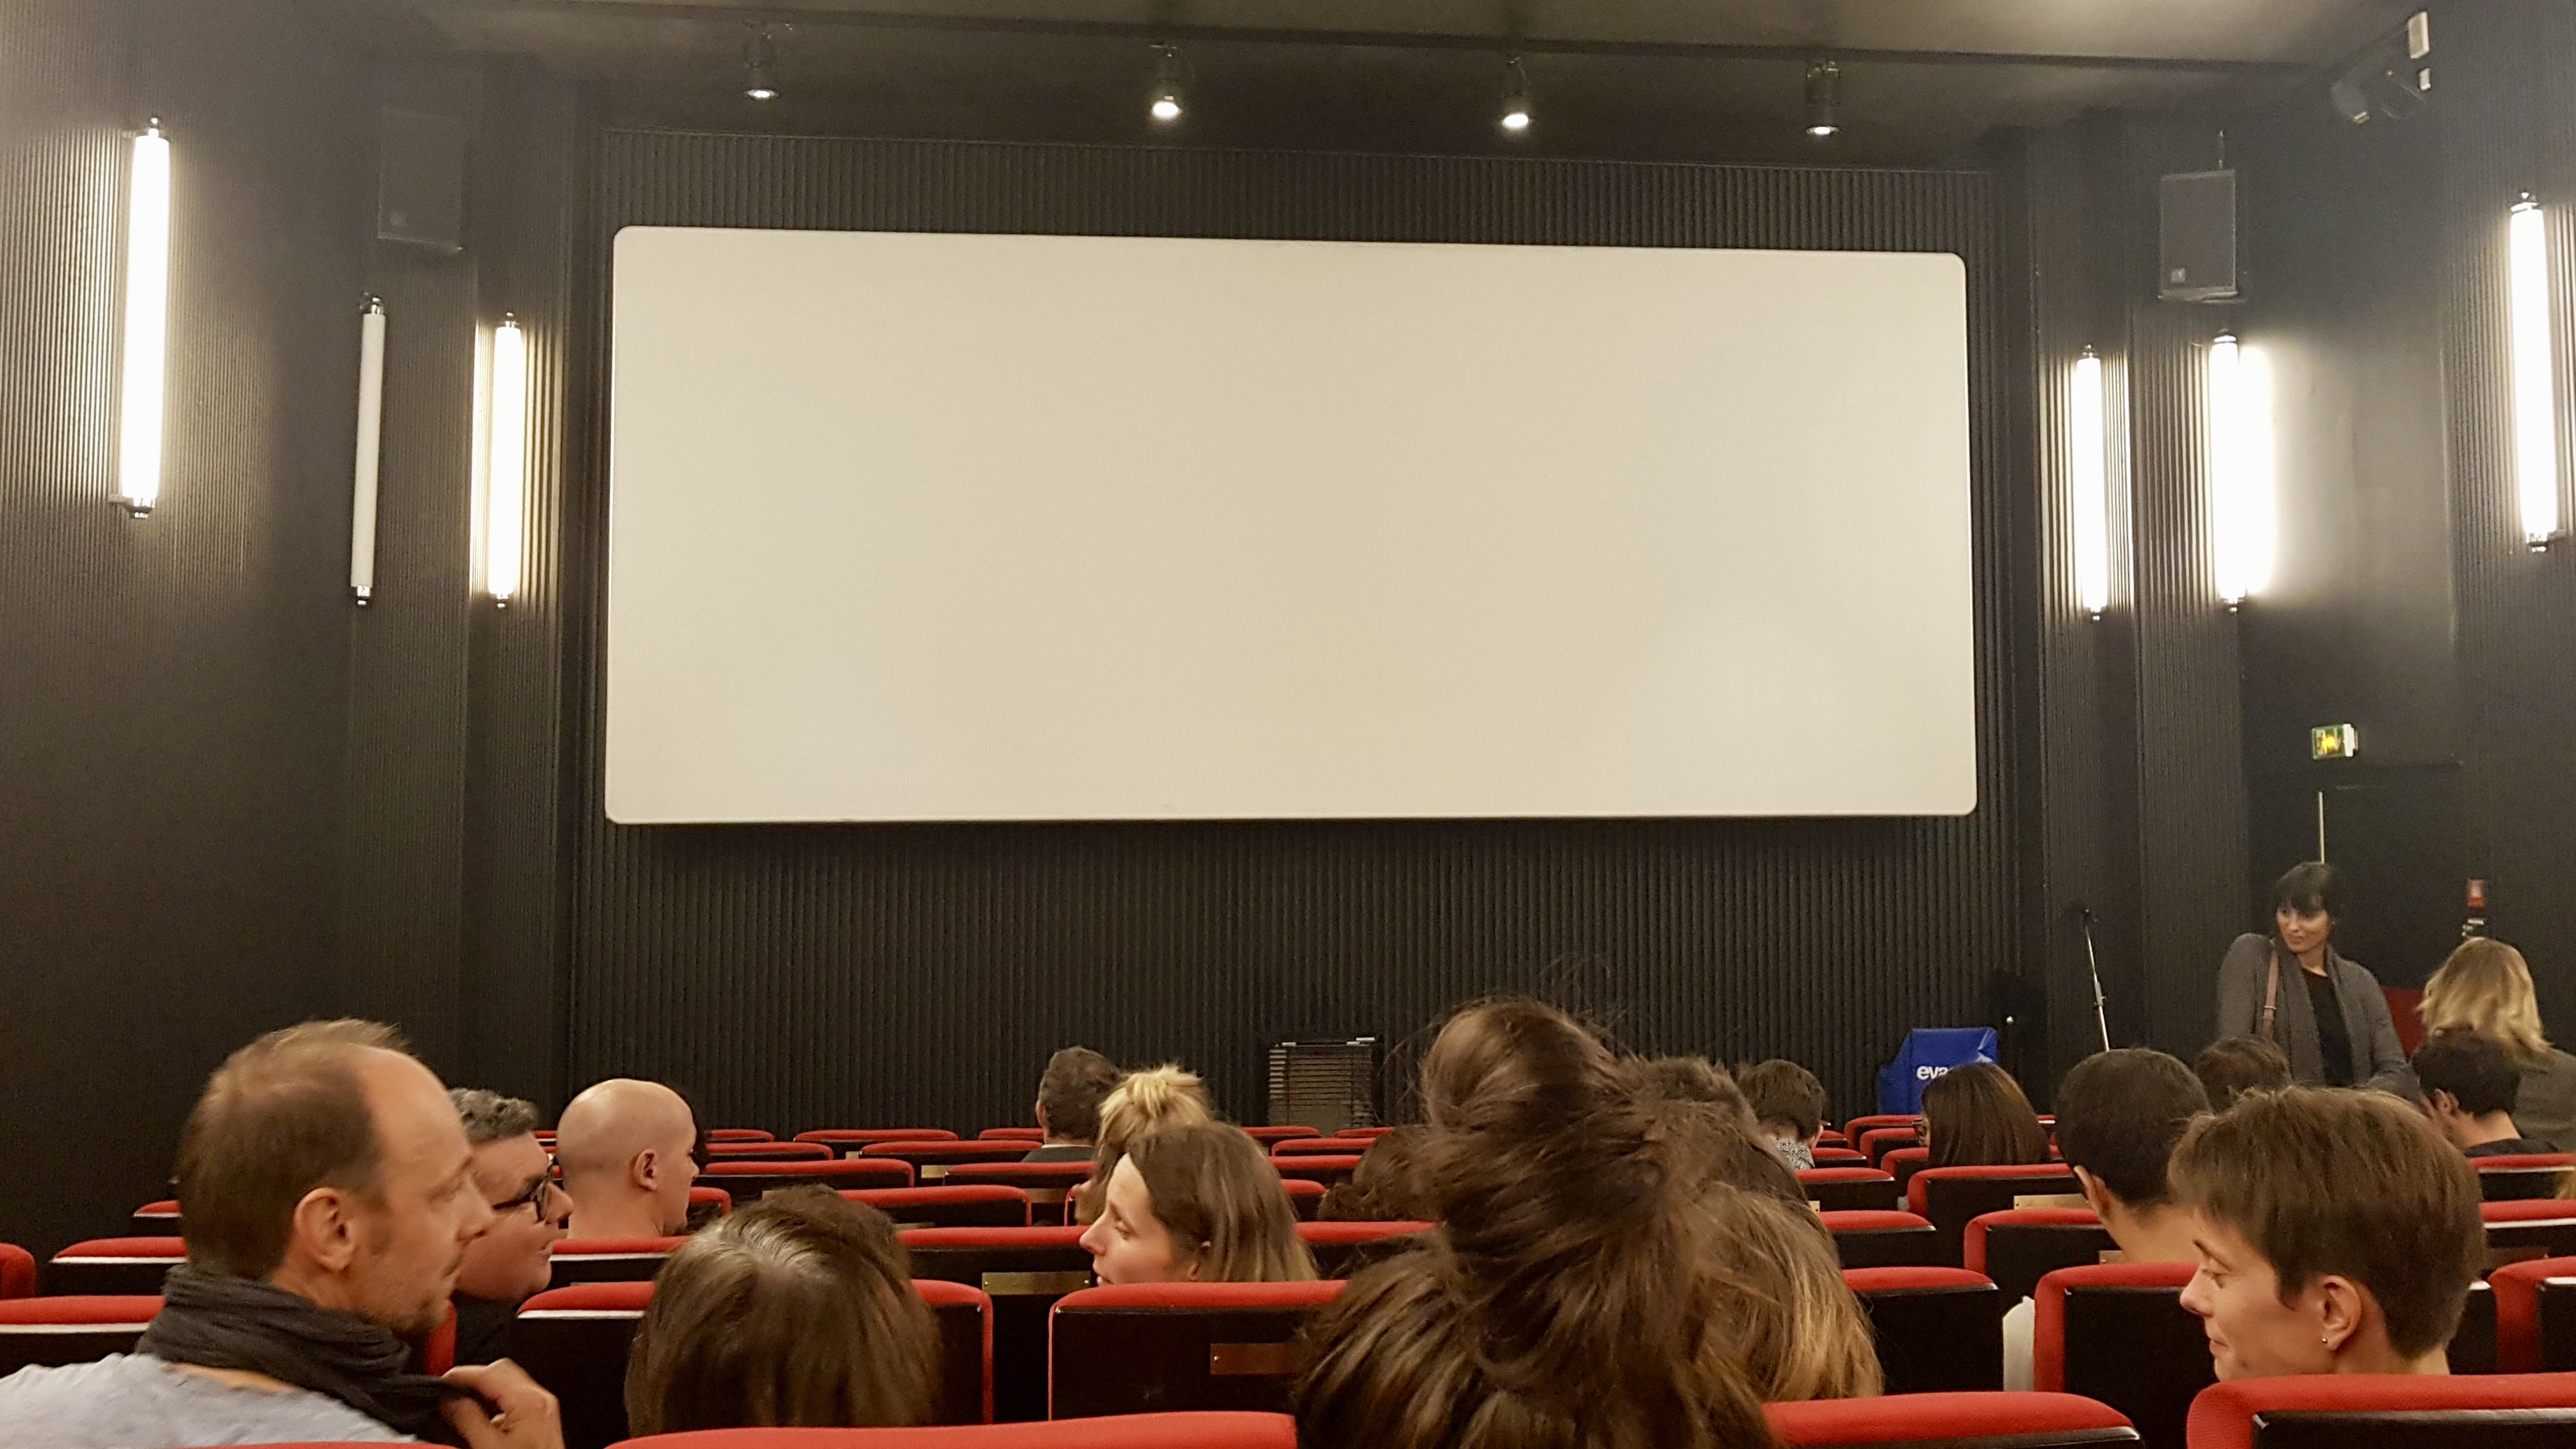 Salle projection cinema Centre Wallonie-Bruxelles Paris